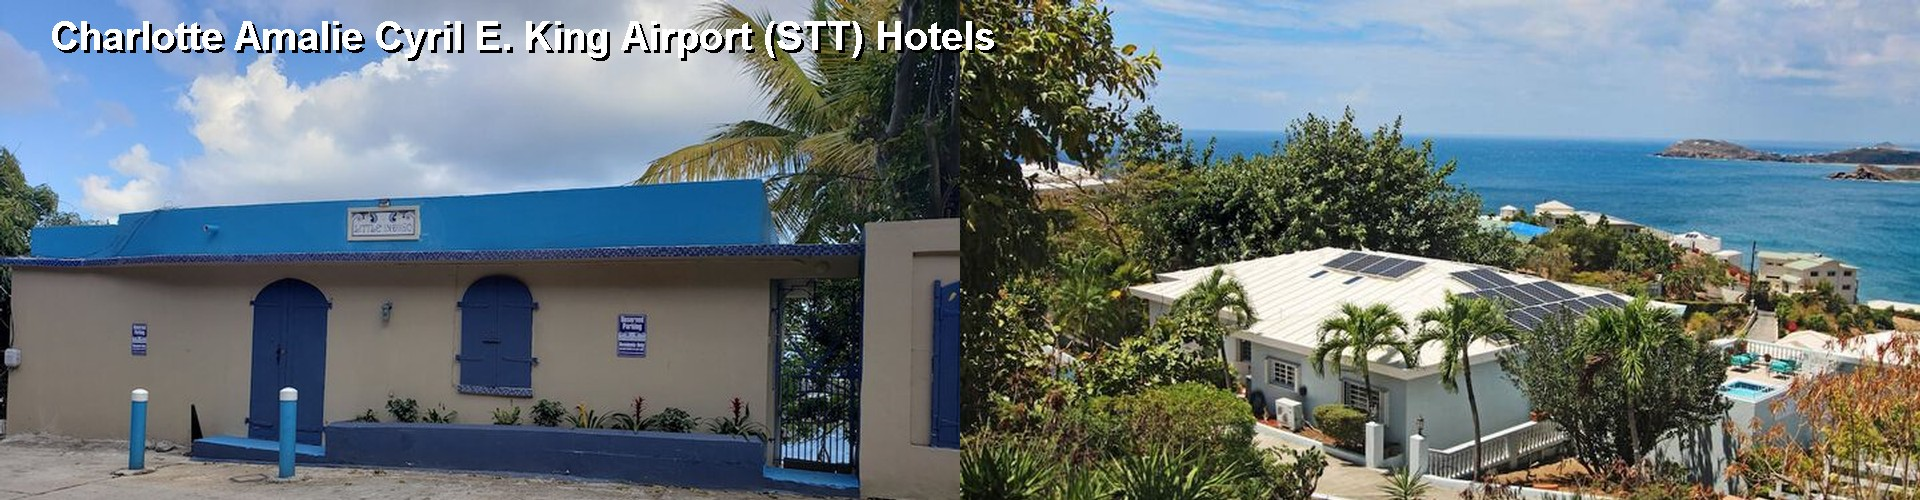 5 Best Hotels near Charlotte Amalie Cyril E. King Airport (STT)